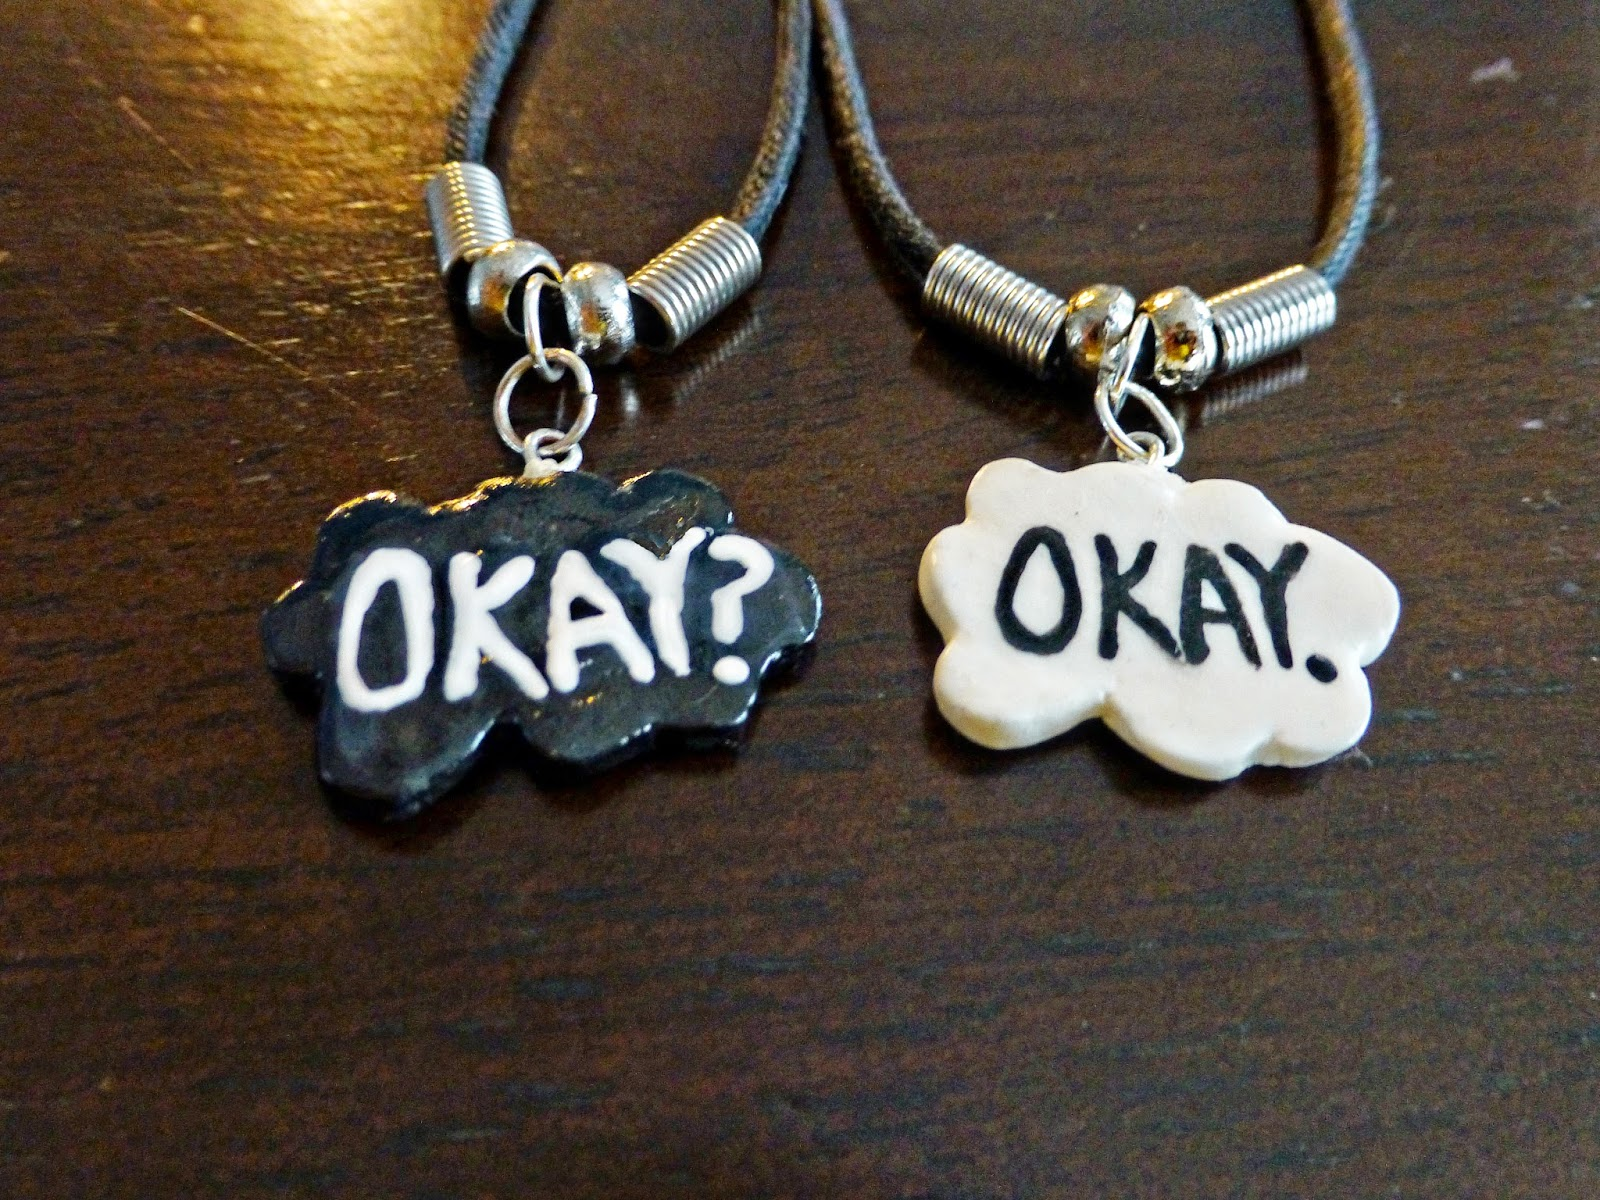 The fault in our stars necklace